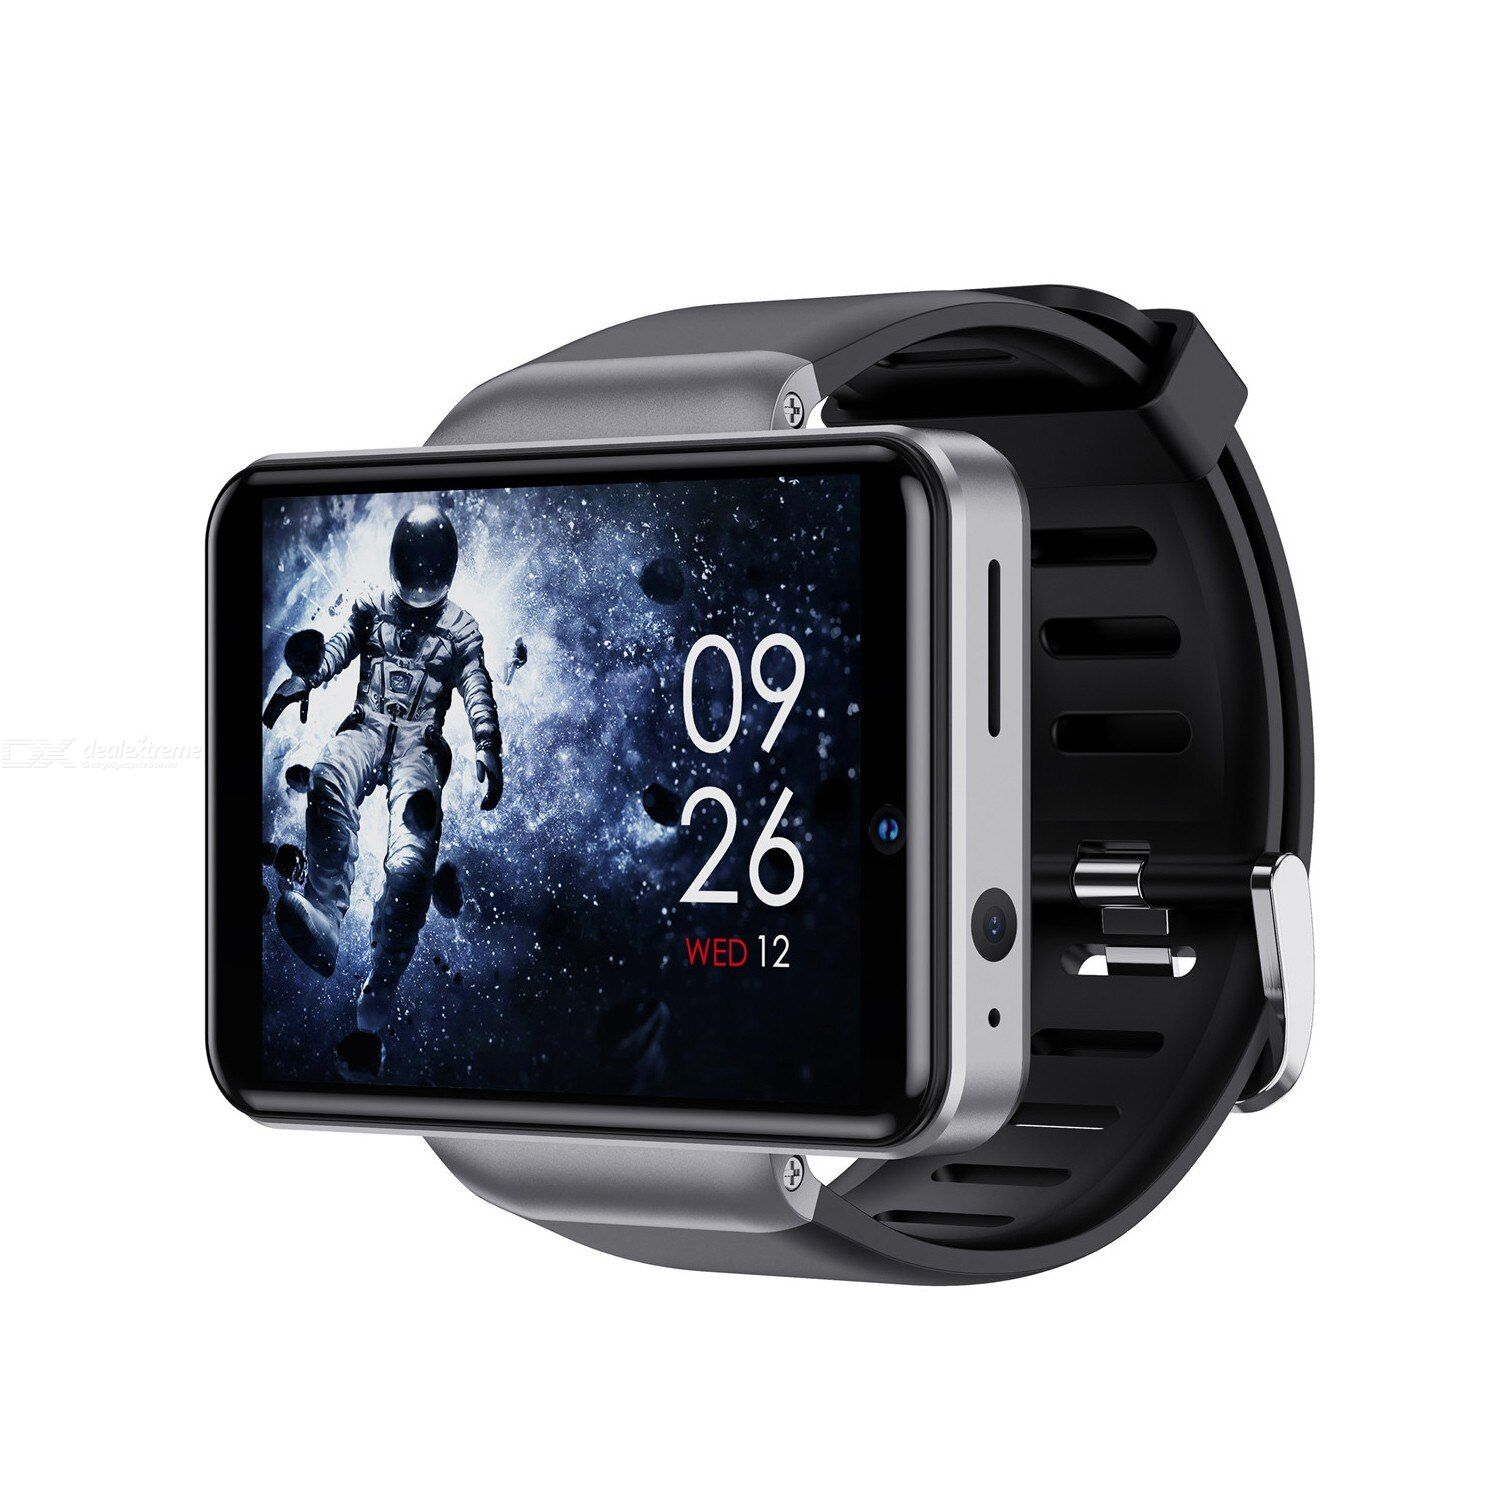 Dm101 smart watch android 4g whole network call touch screen smart call watch